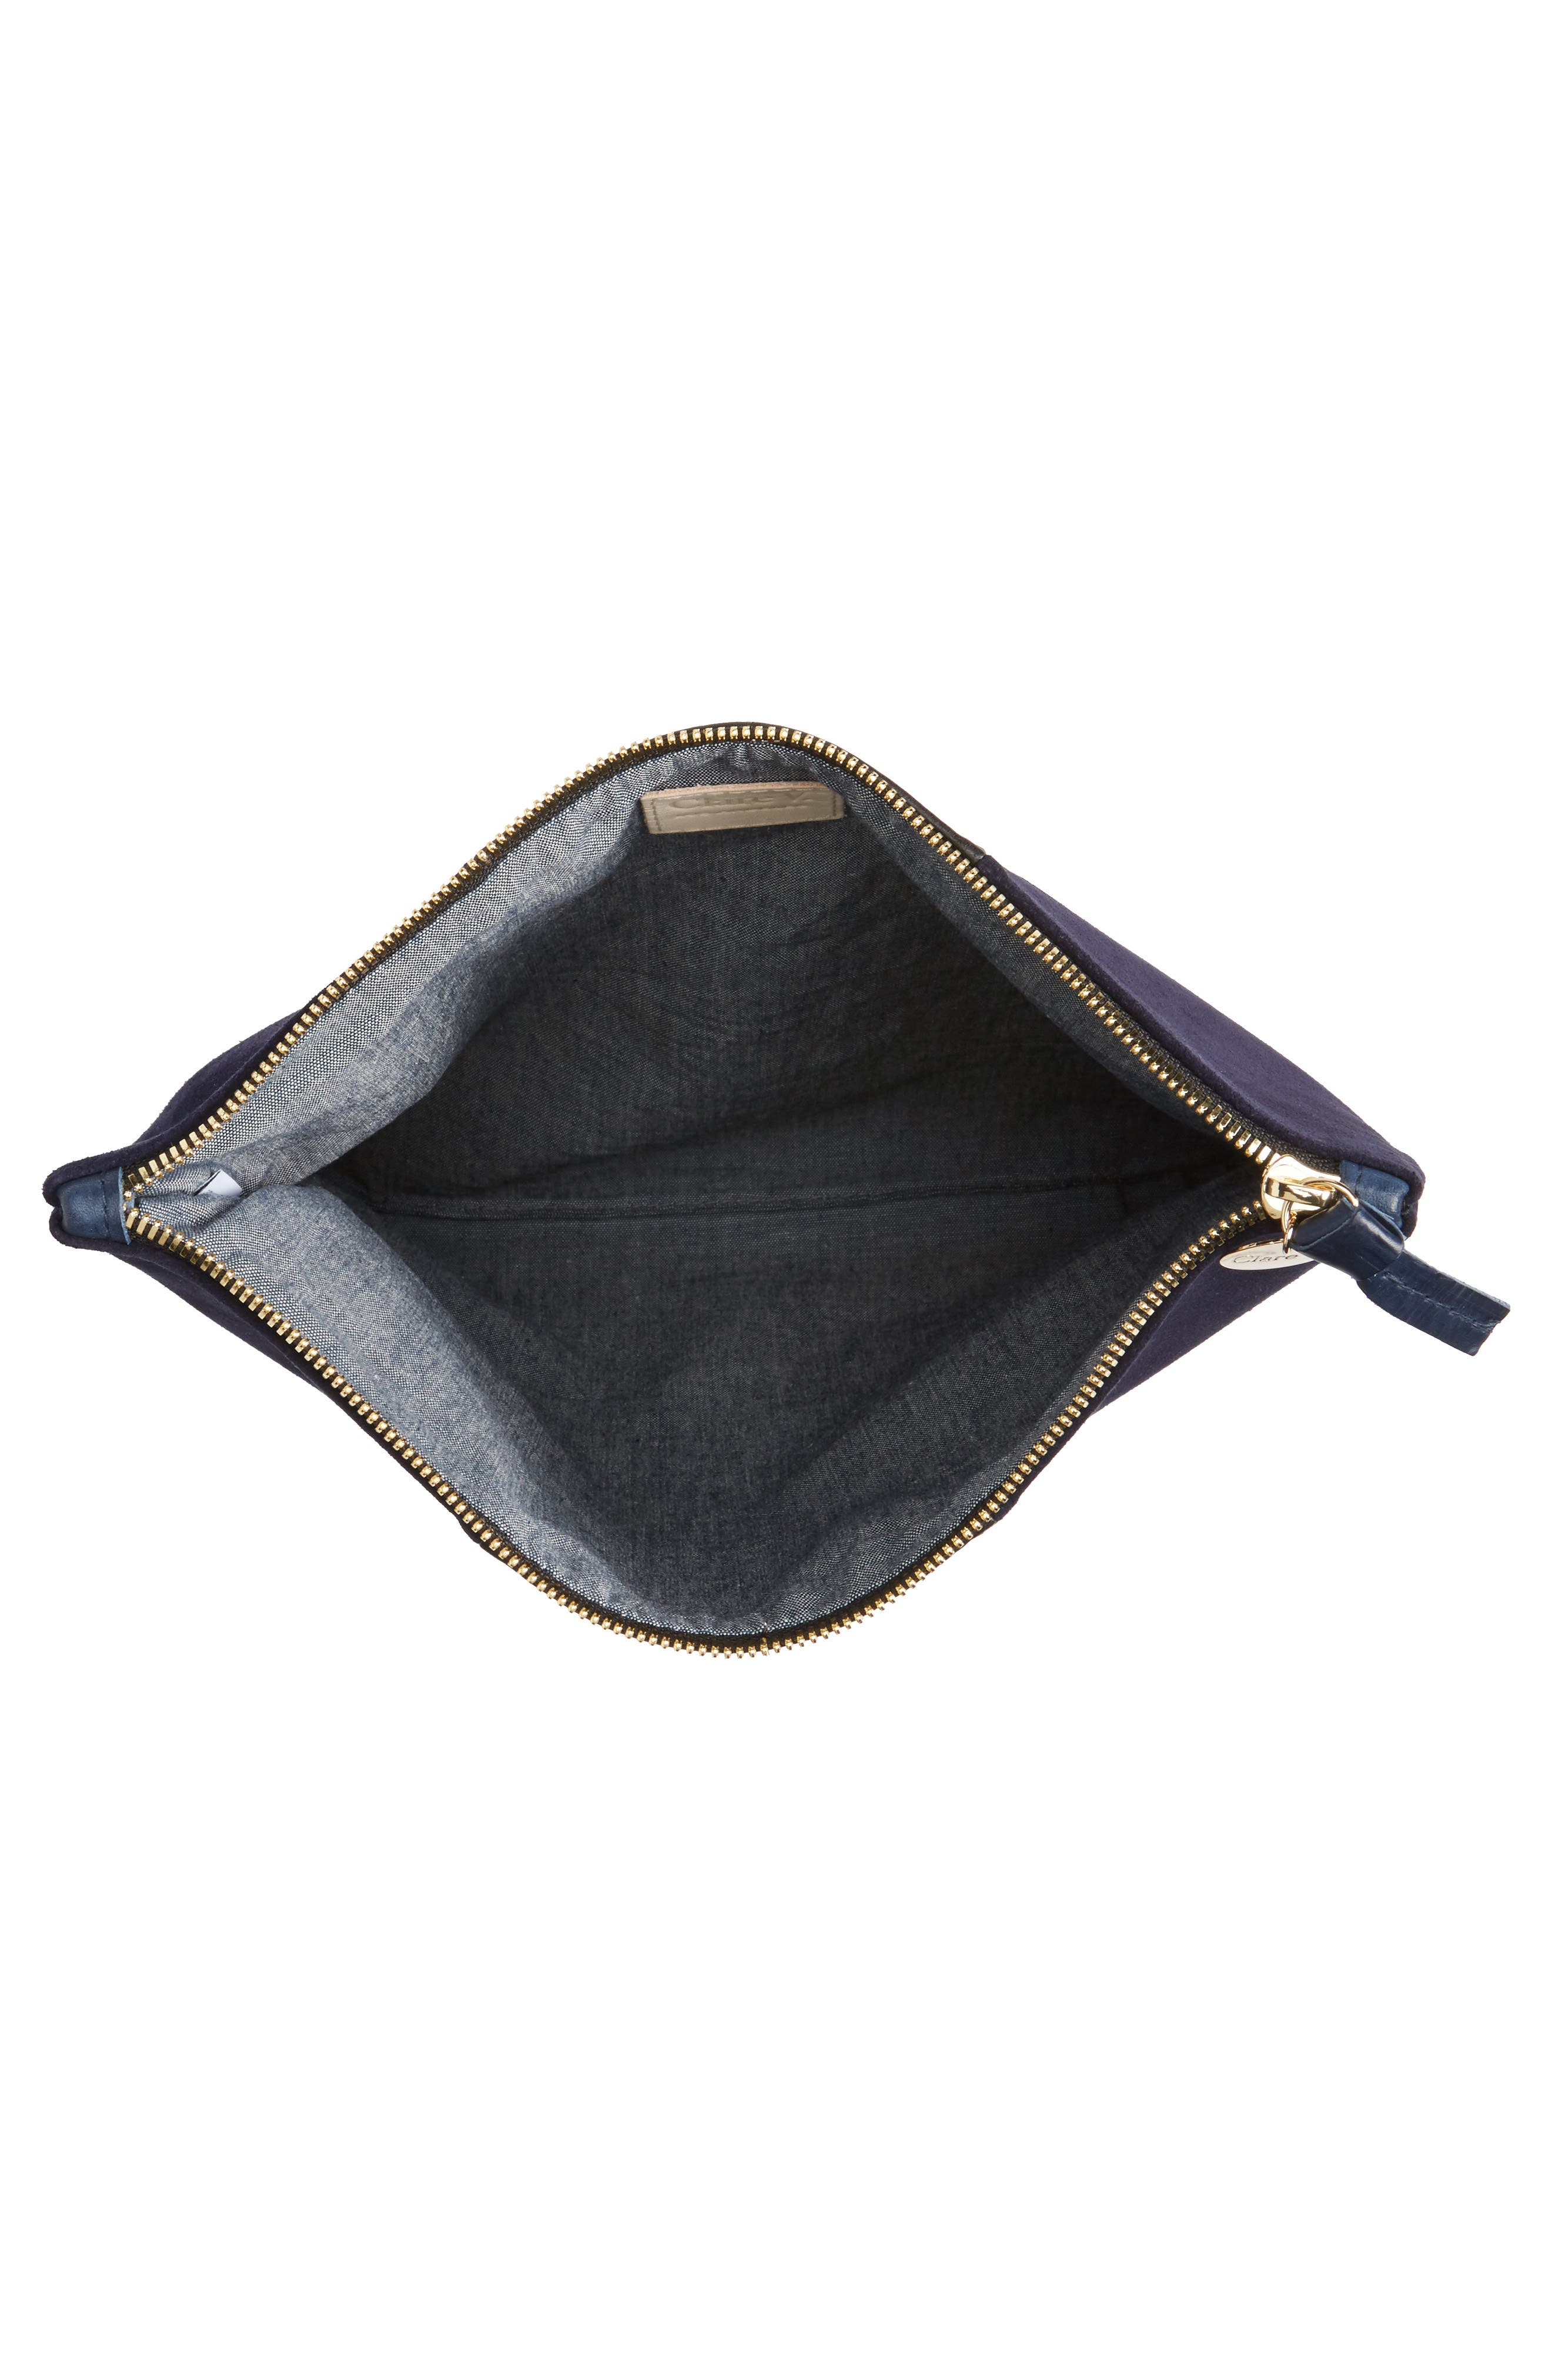 Leather & Suede Foldover Clutch,                             Alternate thumbnail 4, color,                             Black Nappa/ Navy Suede